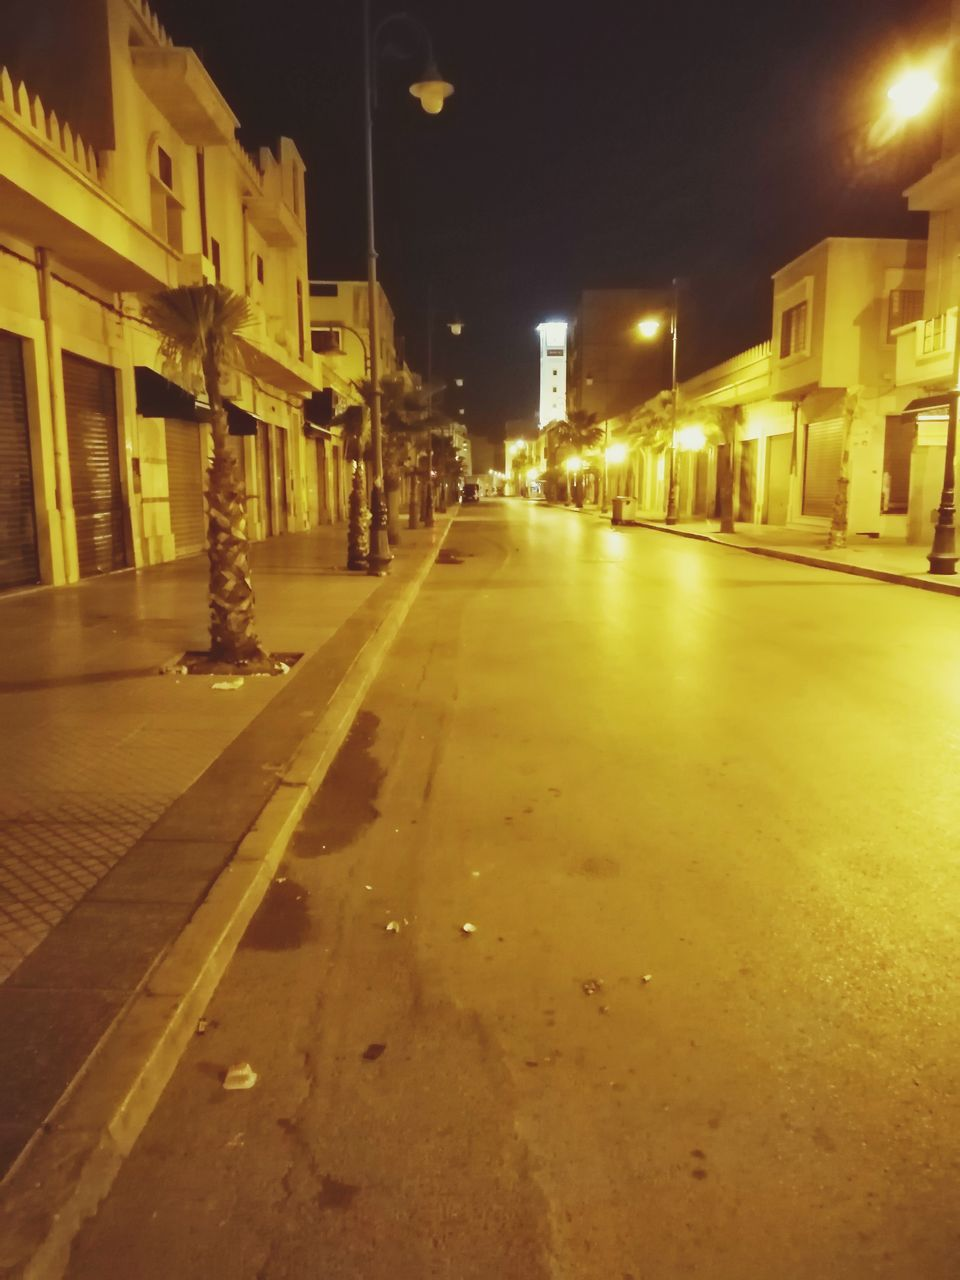 illuminated, architecture, street, night, built structure, city, building exterior, road, transportation, street light, the way forward, direction, lighting equipment, no people, building, city street, residential district, mode of transportation, car, motor vehicle, outdoors, light, surface level